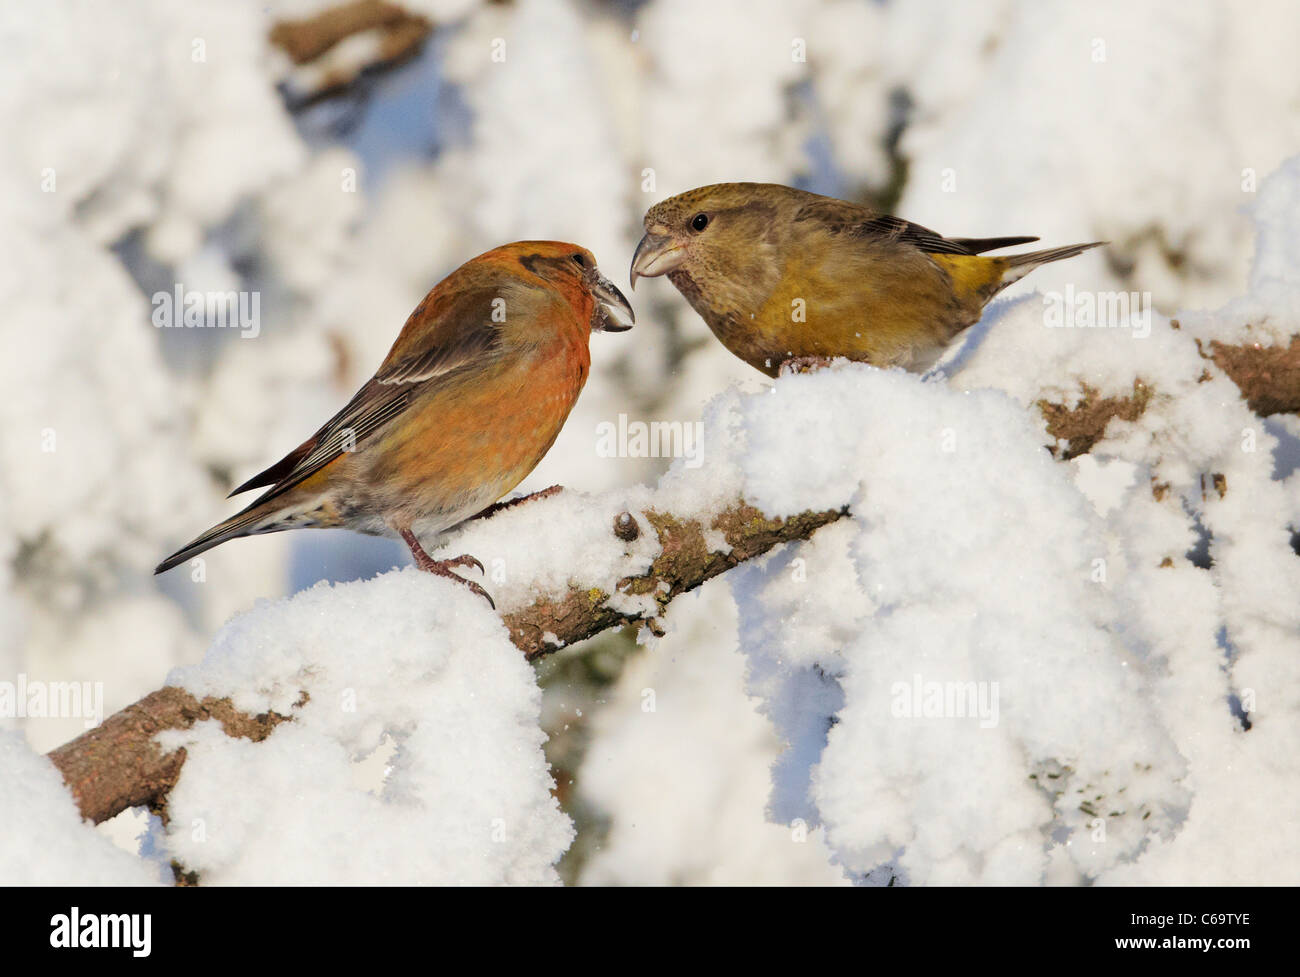 Common Crossbill, Red Crossbill (Loxia curvirostra). Couple perched in a snowy spruce. - Stock Image